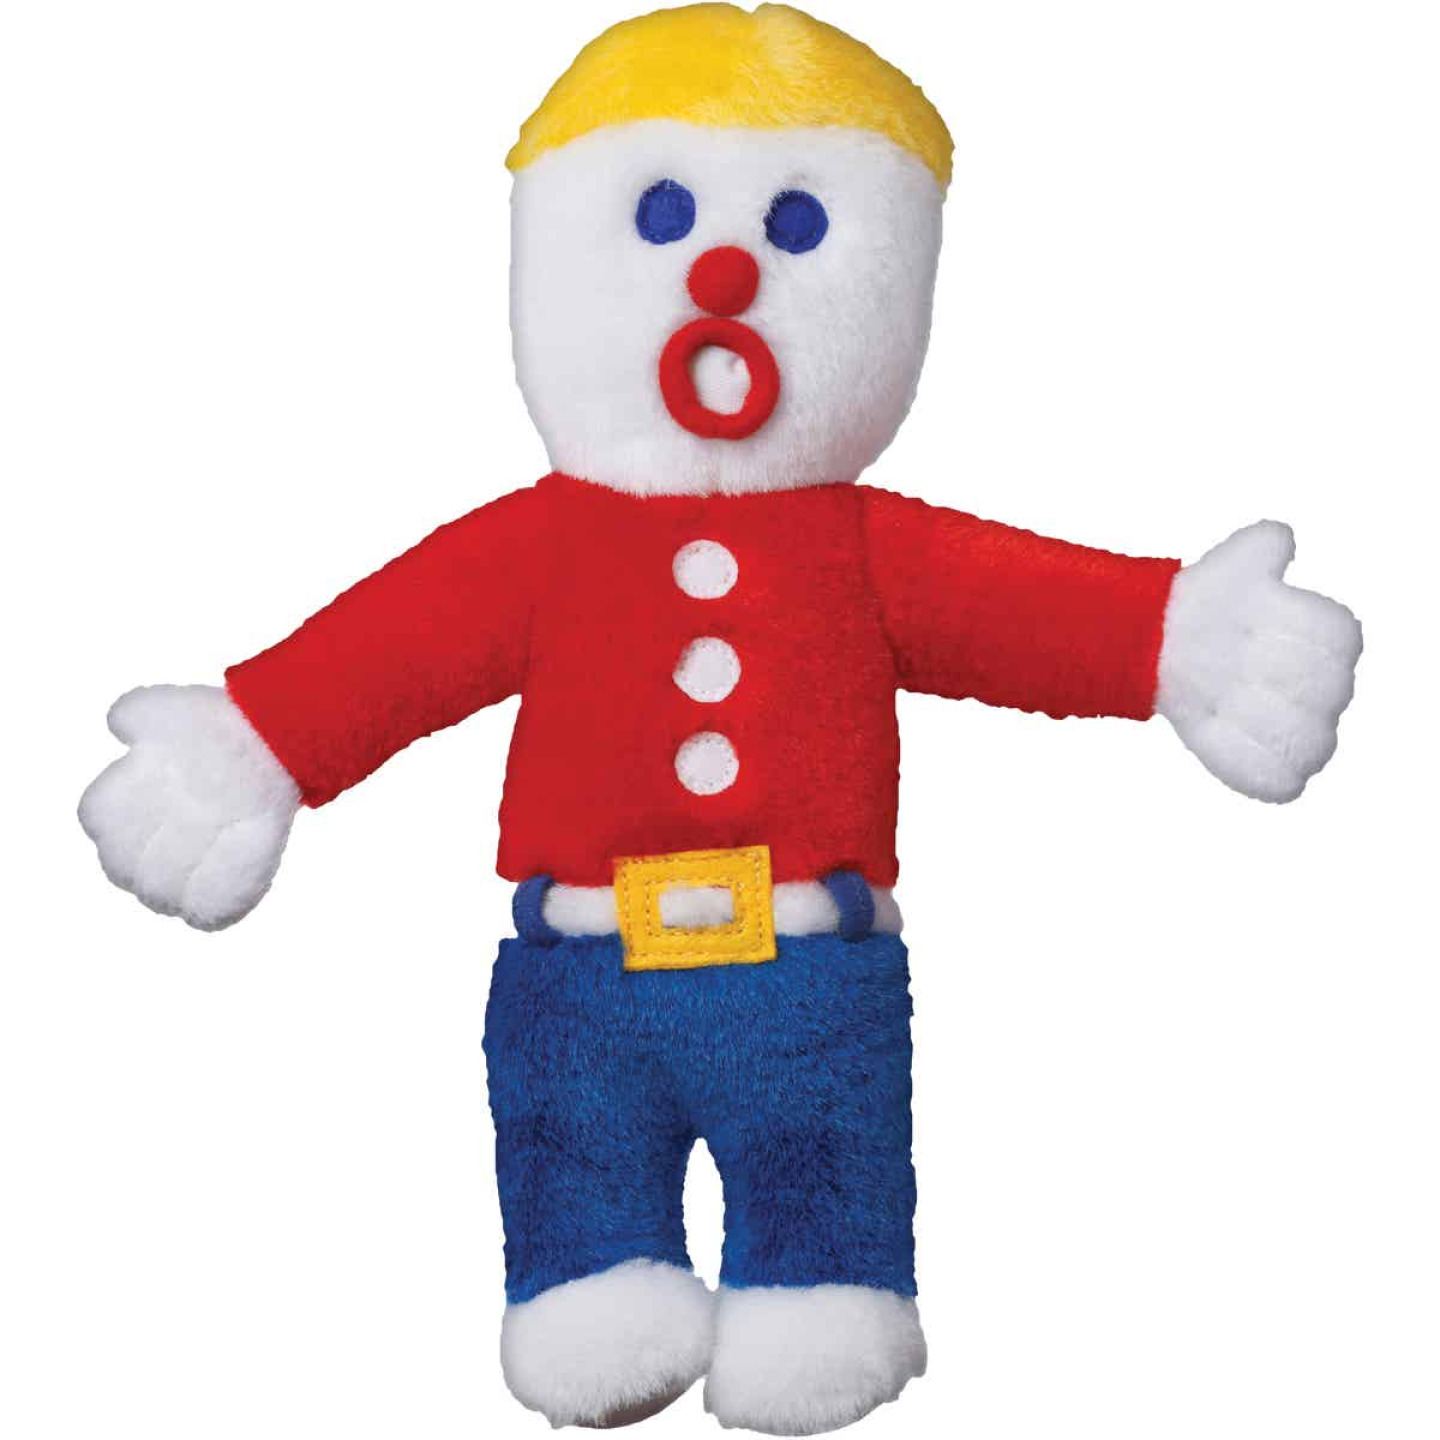 Multipet 10 In. Plush Mr. Bill Dog Toy Image 1